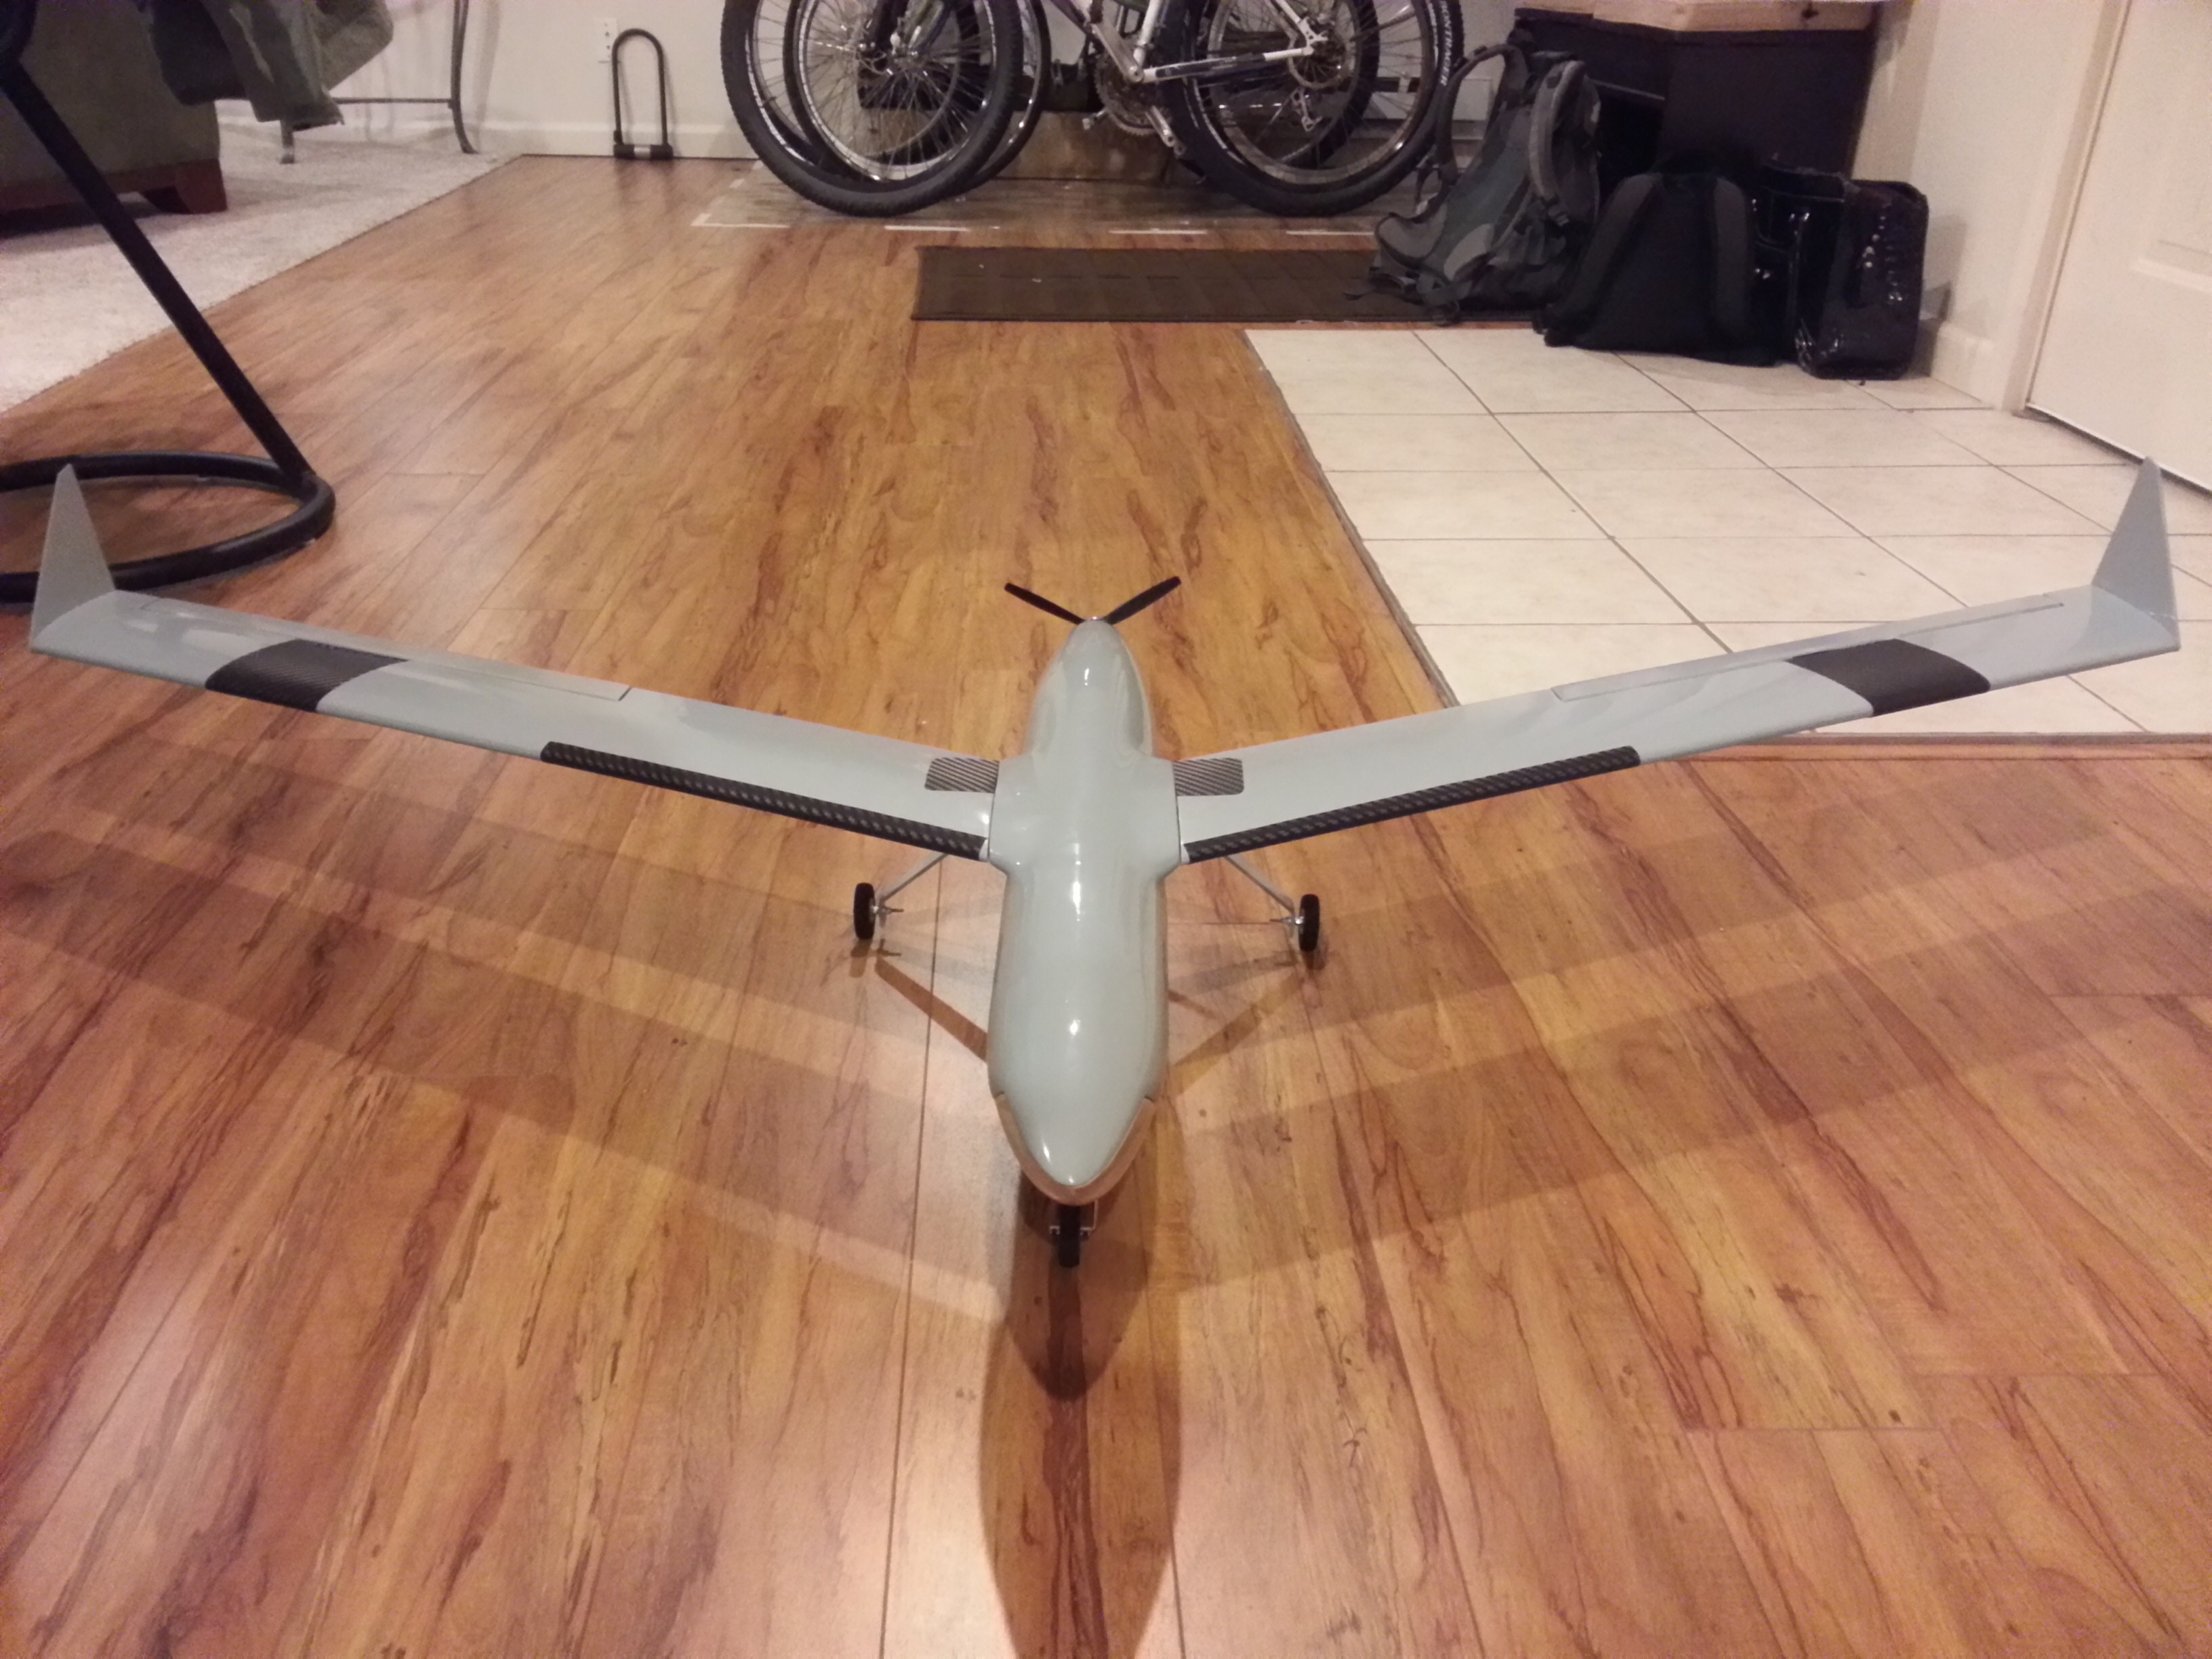 Make a UAV for research and photography